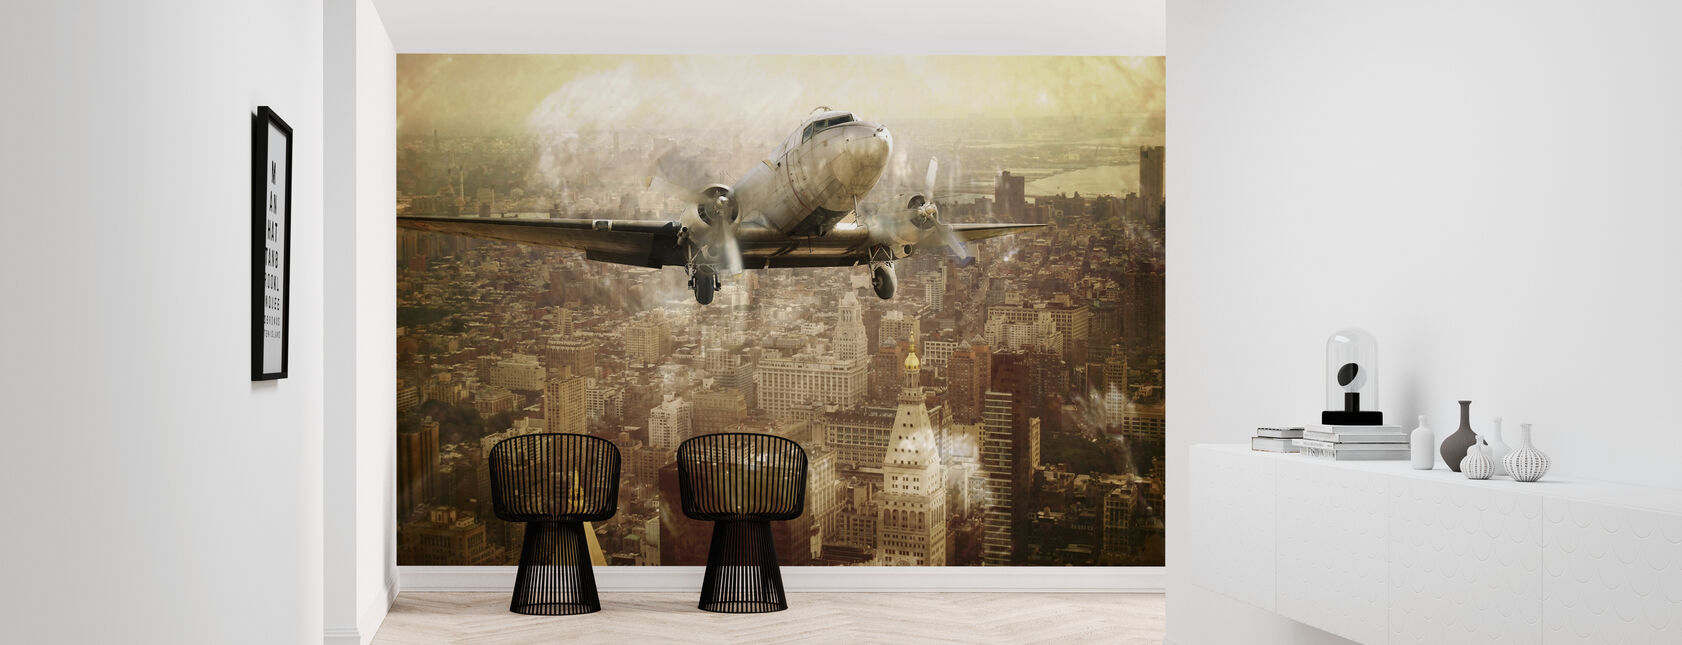 Vintage Flight - Wallpaper - Hallway